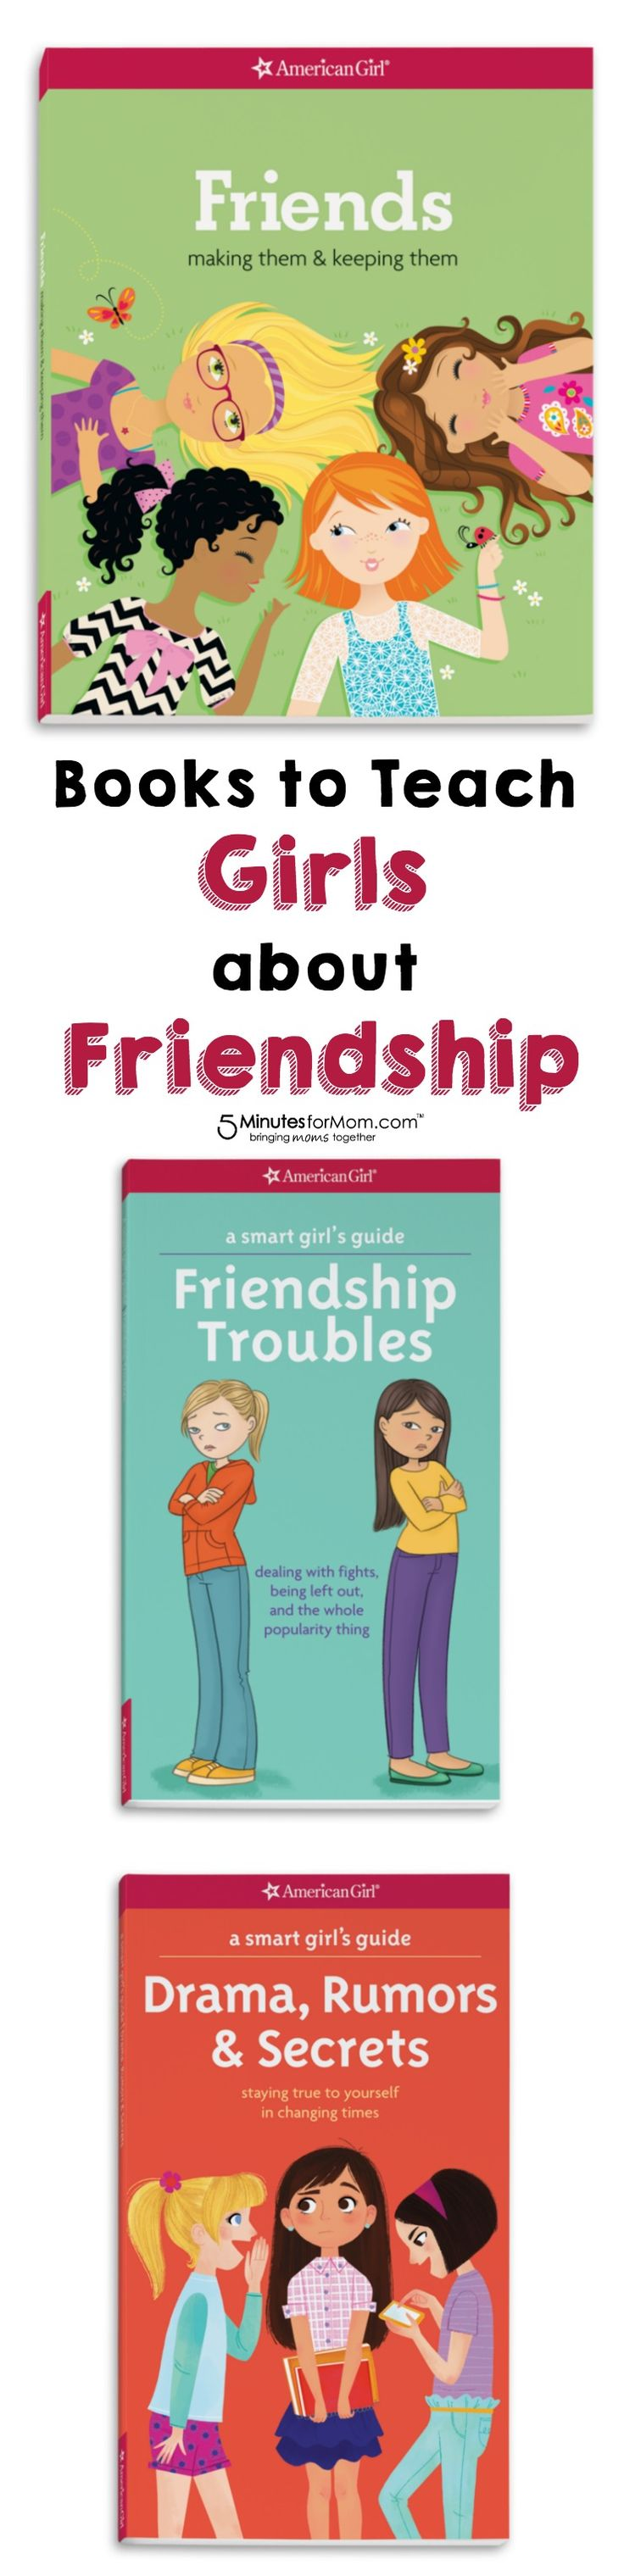 Books to teach girls about friendship. These American Girl books make it easier to get your tween girls talking about mean girl issues such as gossip, drama and bullying.